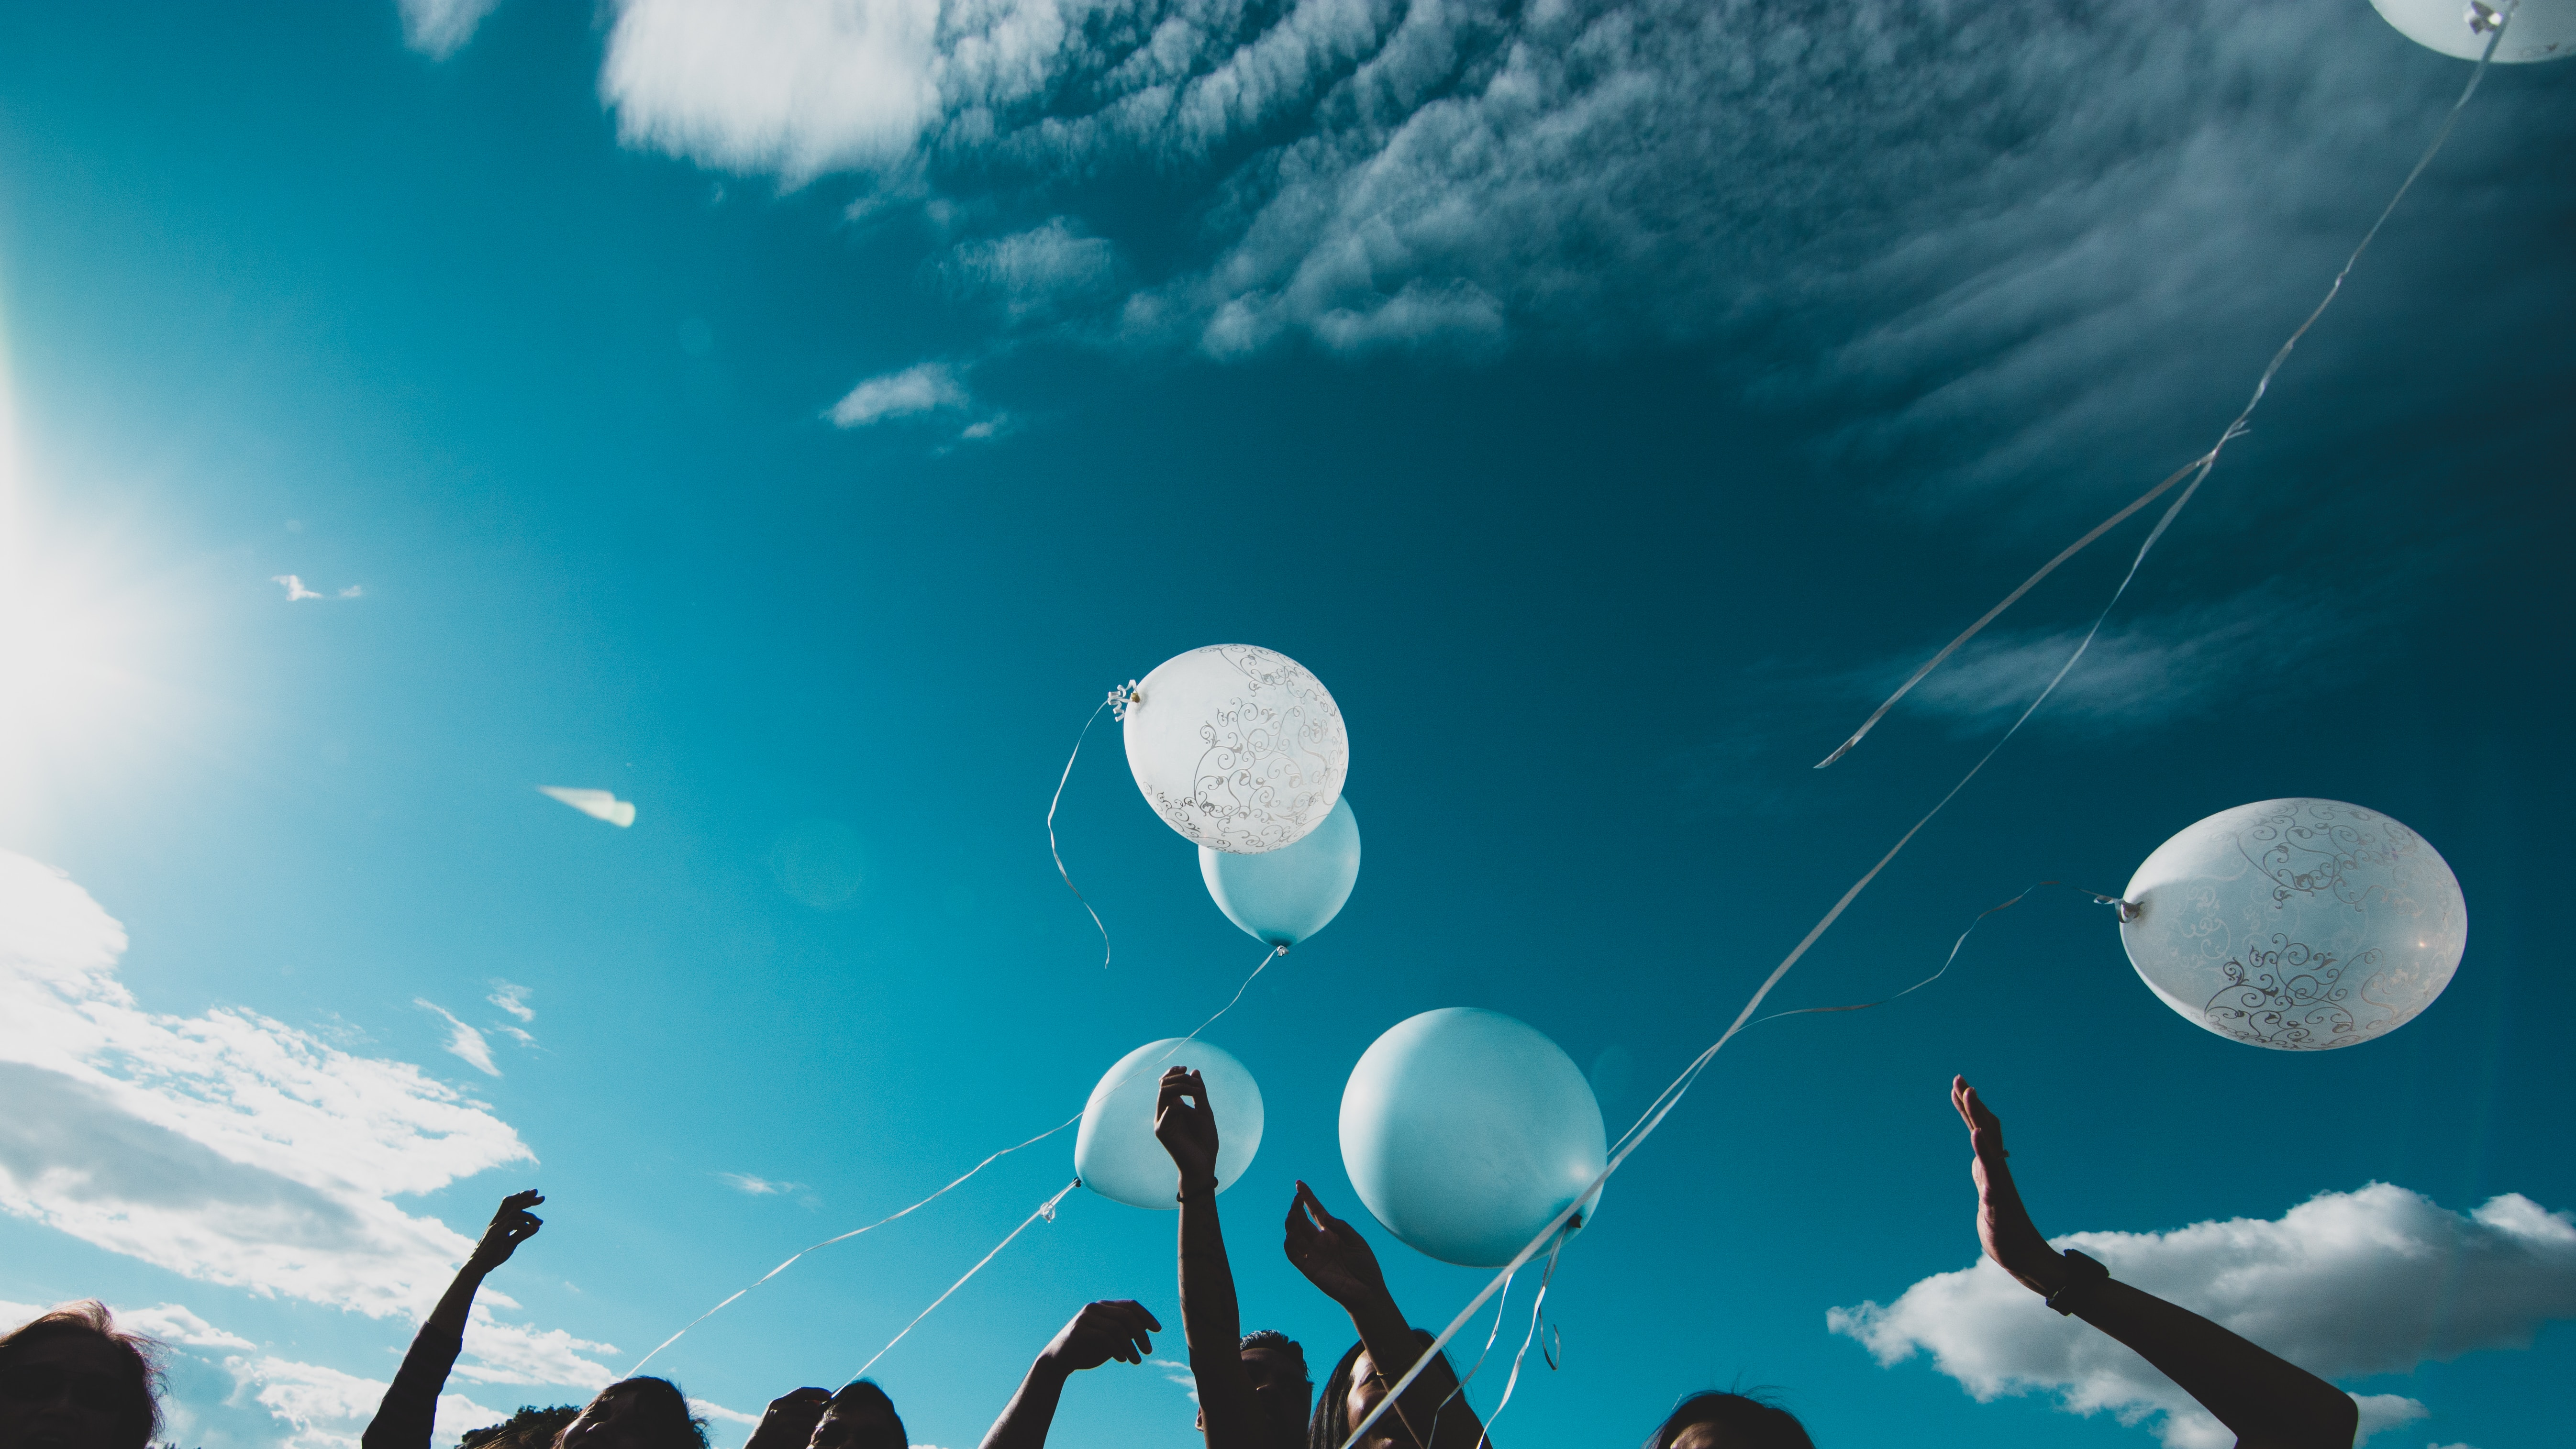 98948 Screensavers and Wallpapers Balloons for phone. Download People, Sky, Balloons, Miscellanea, Miscellaneous, Hands, Air Balloons, Fly, To Fly pictures for free